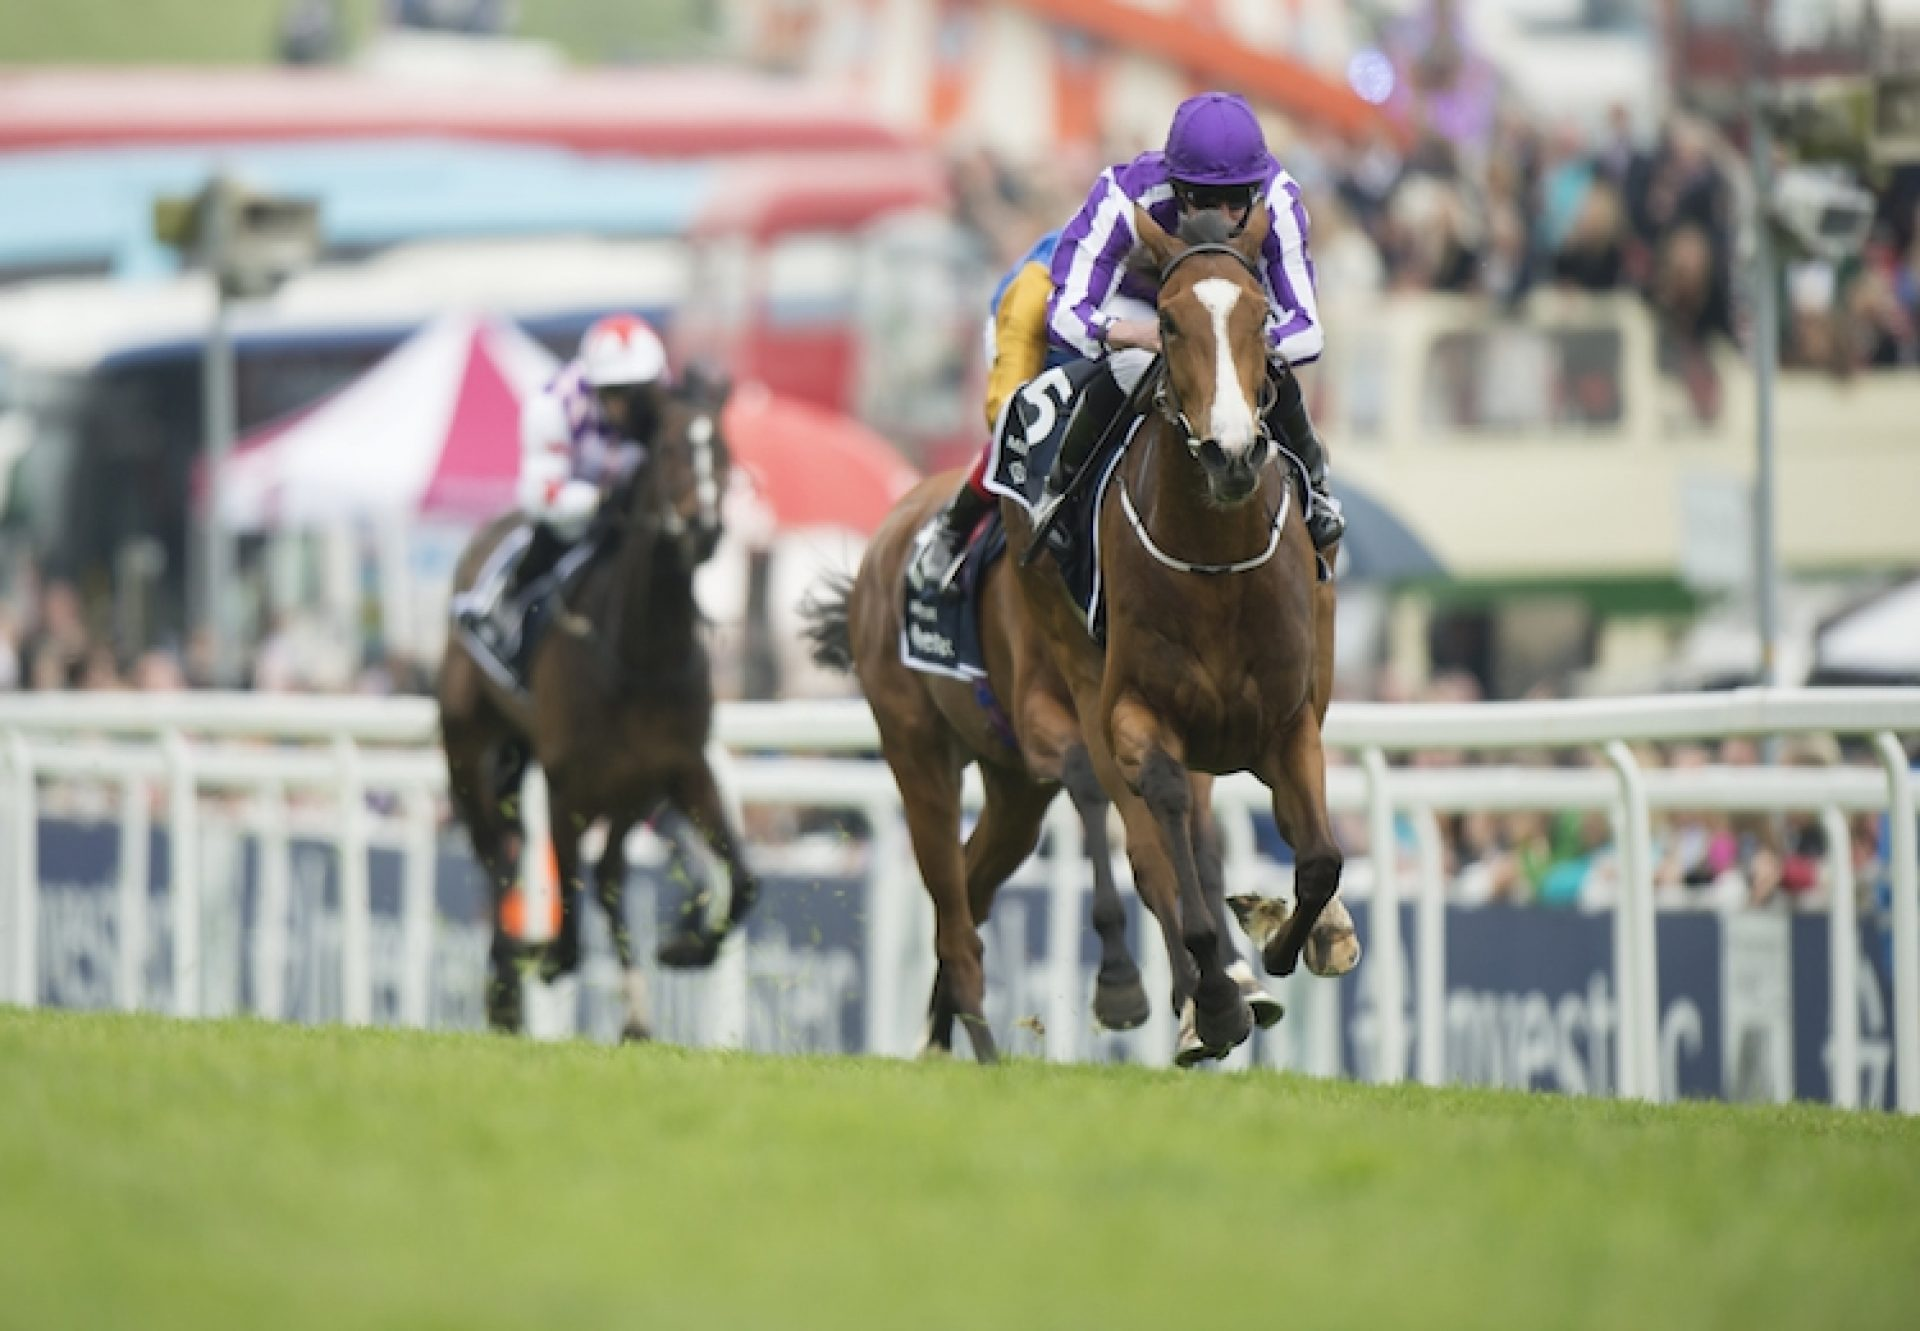 Minding (Galileo) winning the G1 Epsom Oaks at Epsom